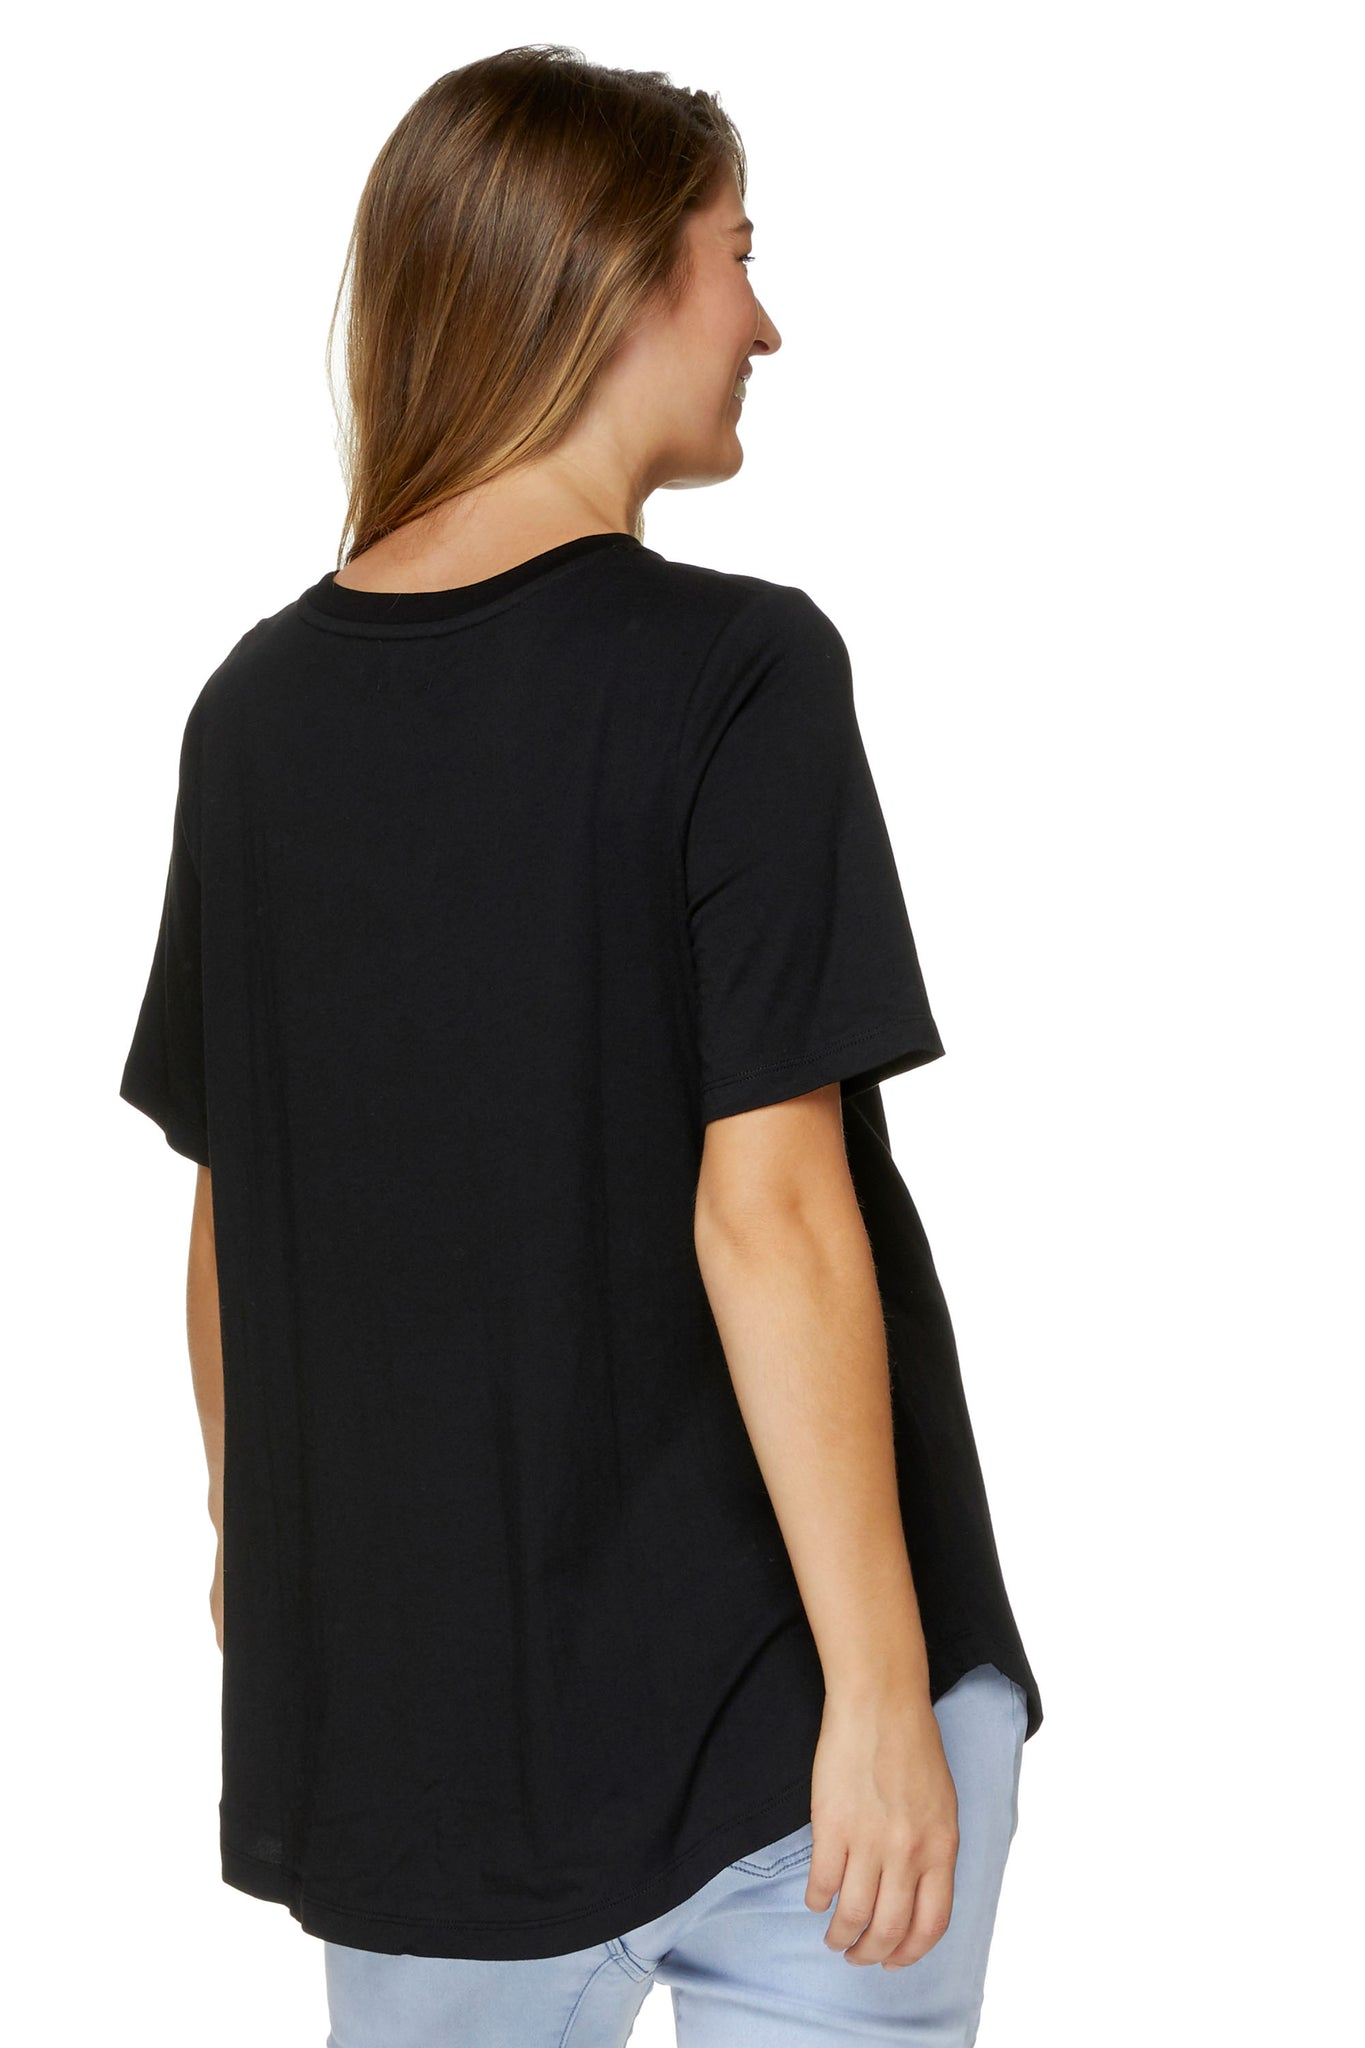 Maternity T Shirt - Black 3